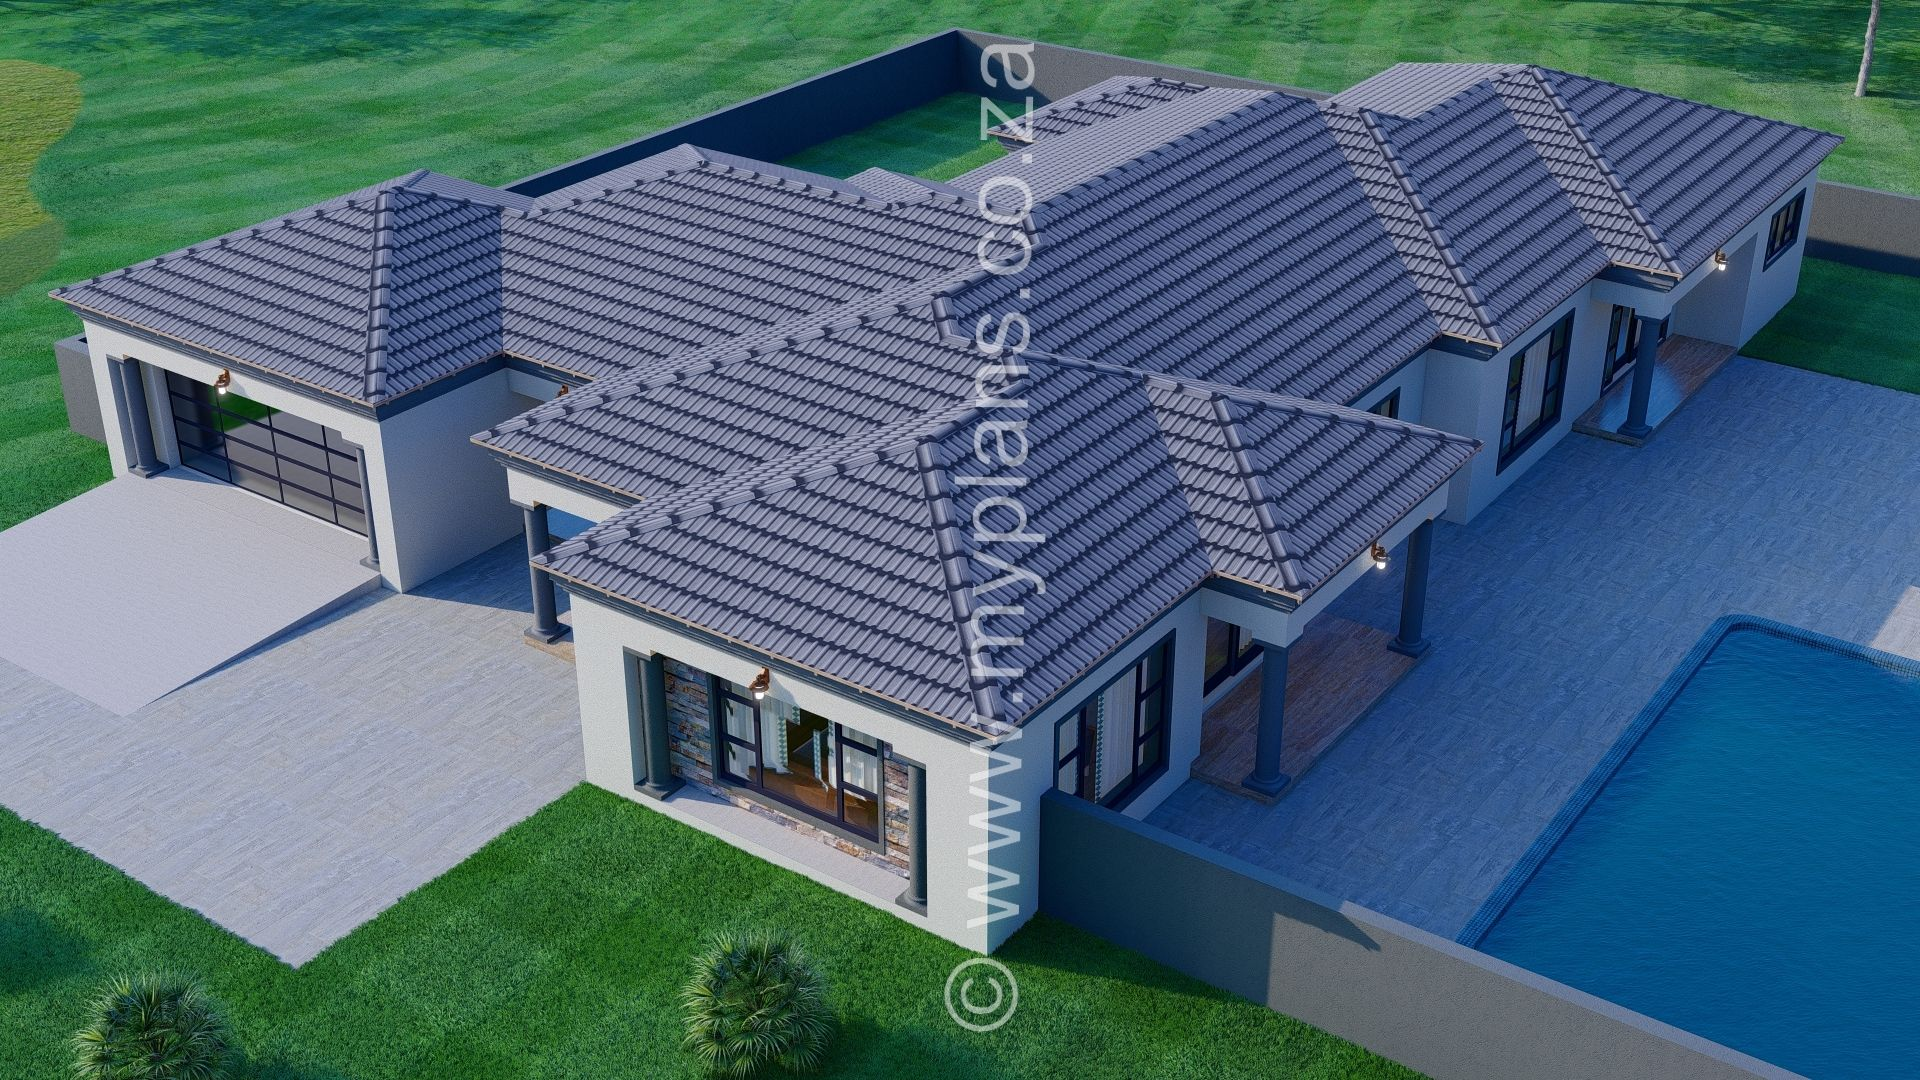 4 Bedroom House Plan Mlb 025s Tuscan House Plans Bedroom House Plans Free House Plans